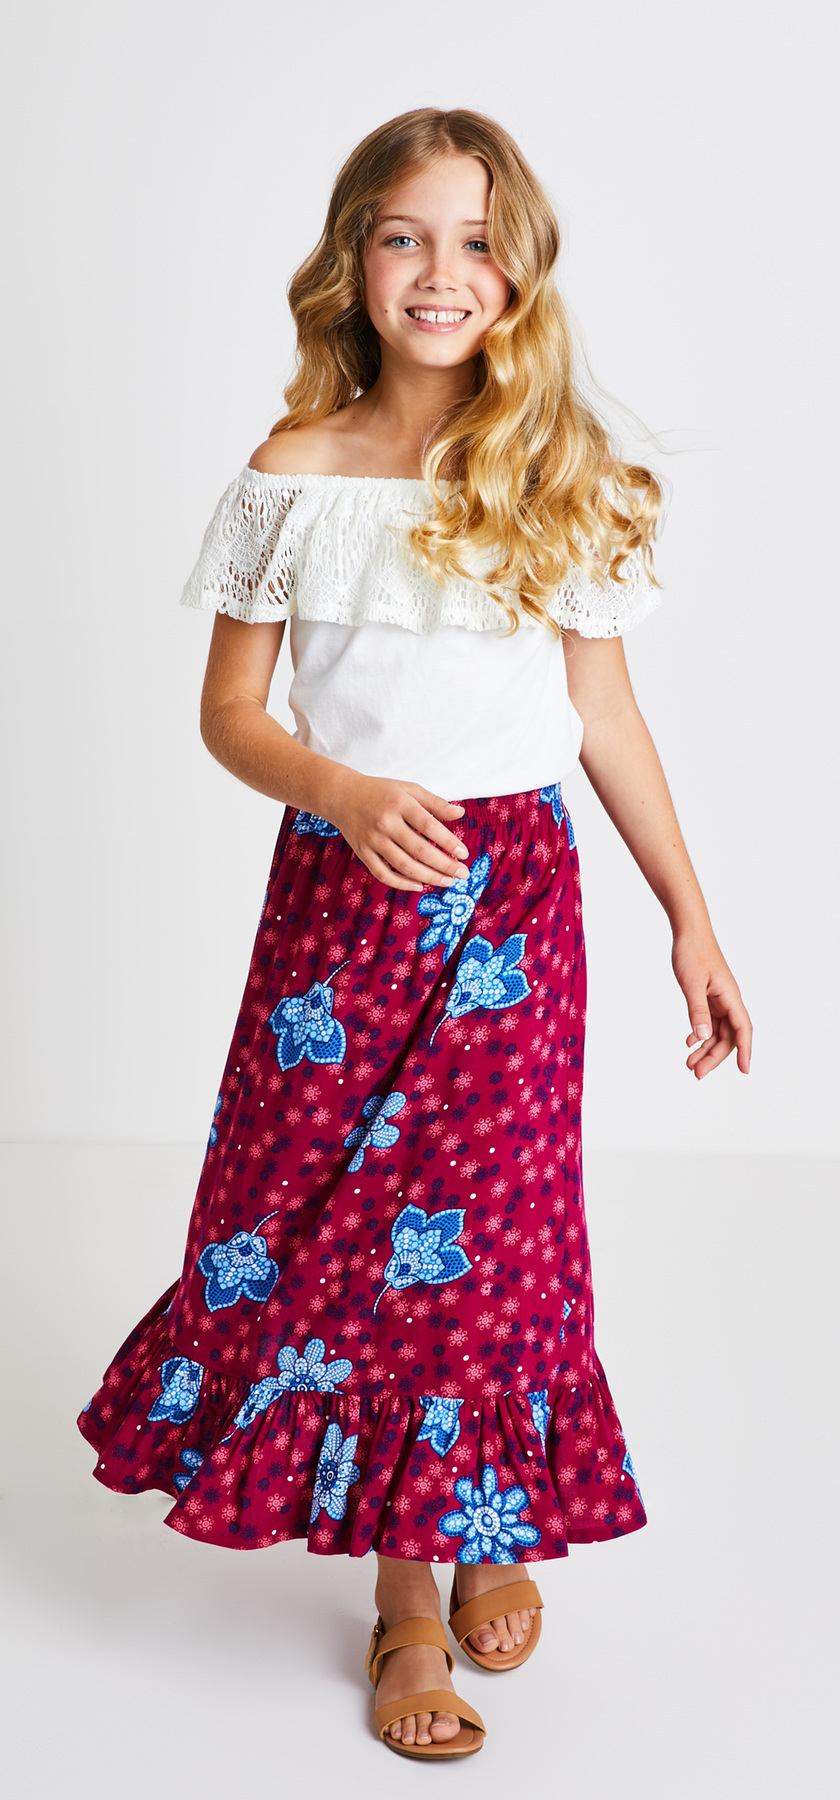 Lace Ruffle Top Maxi Skirt Outfit - FabKids